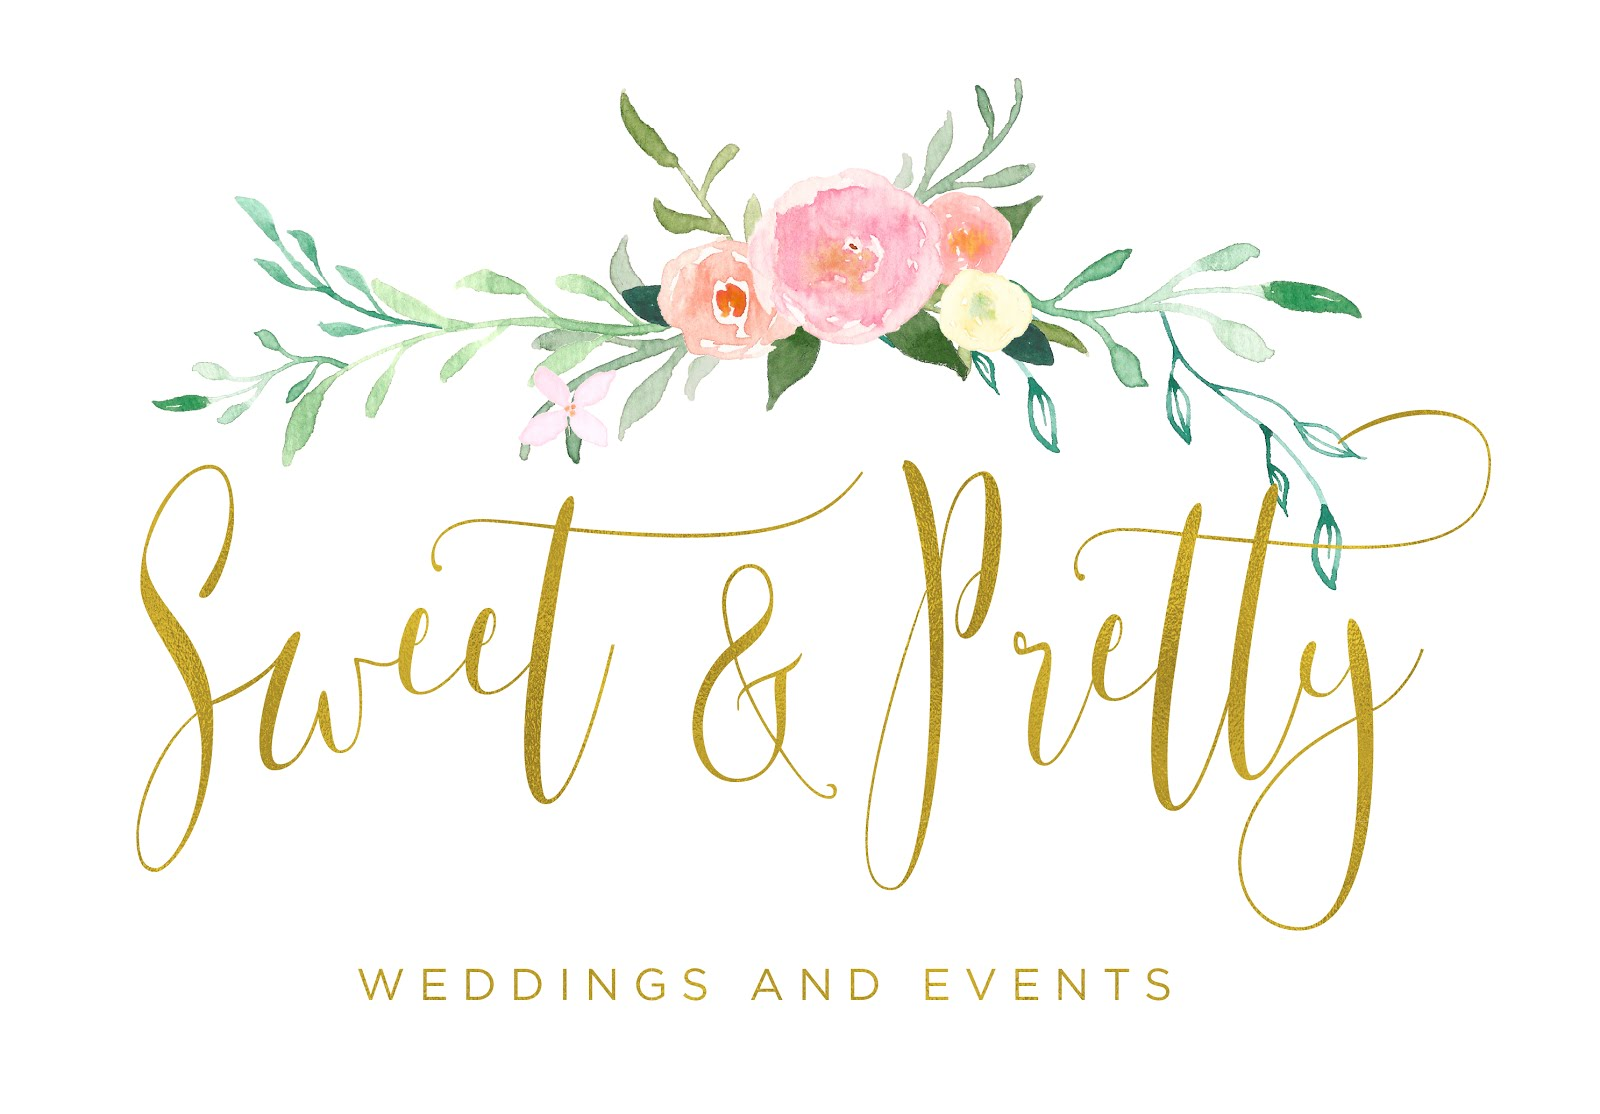 Visit Sweet & Pretty Weddings